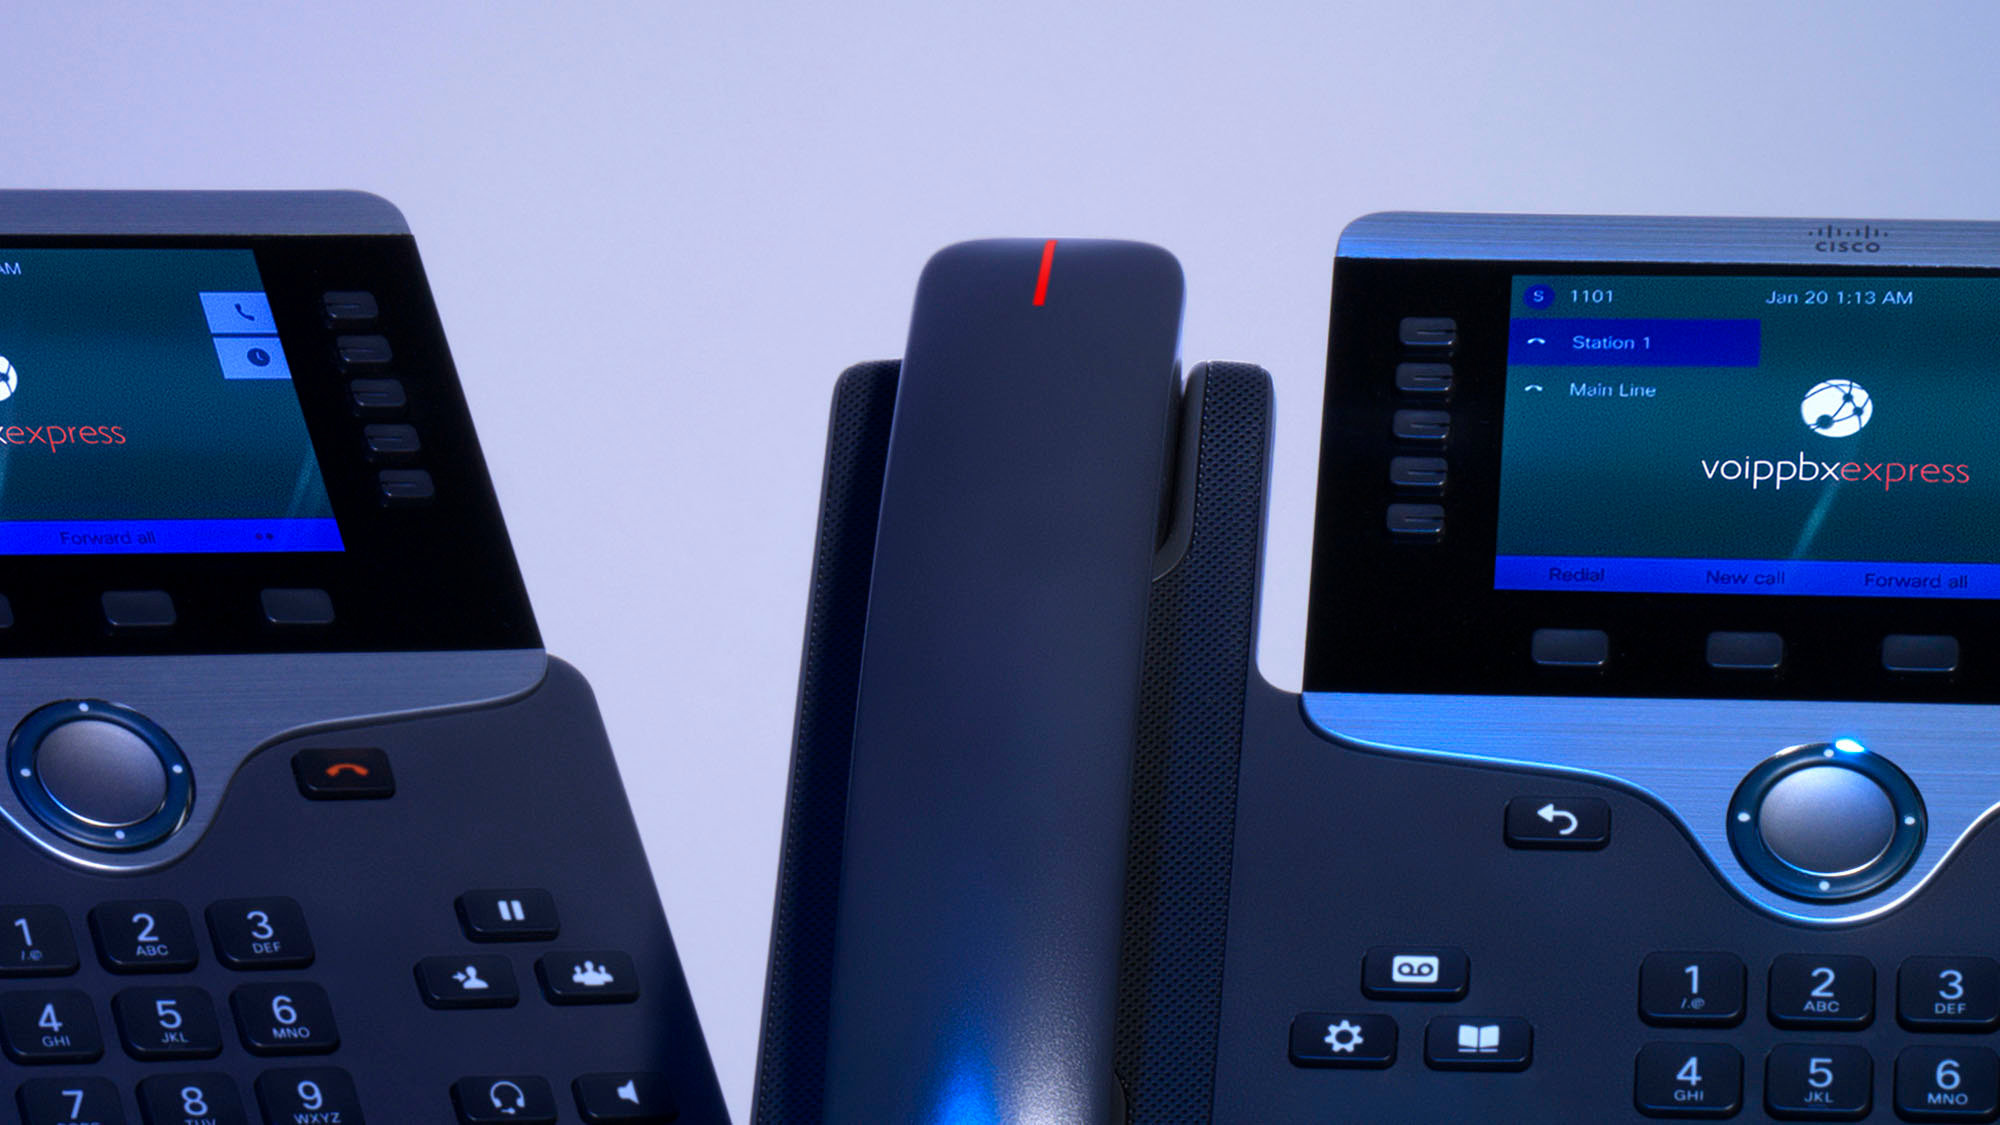 The 20 Executive - Cisco IP PBX Phone System with New Cisco 8800 Color  Phones